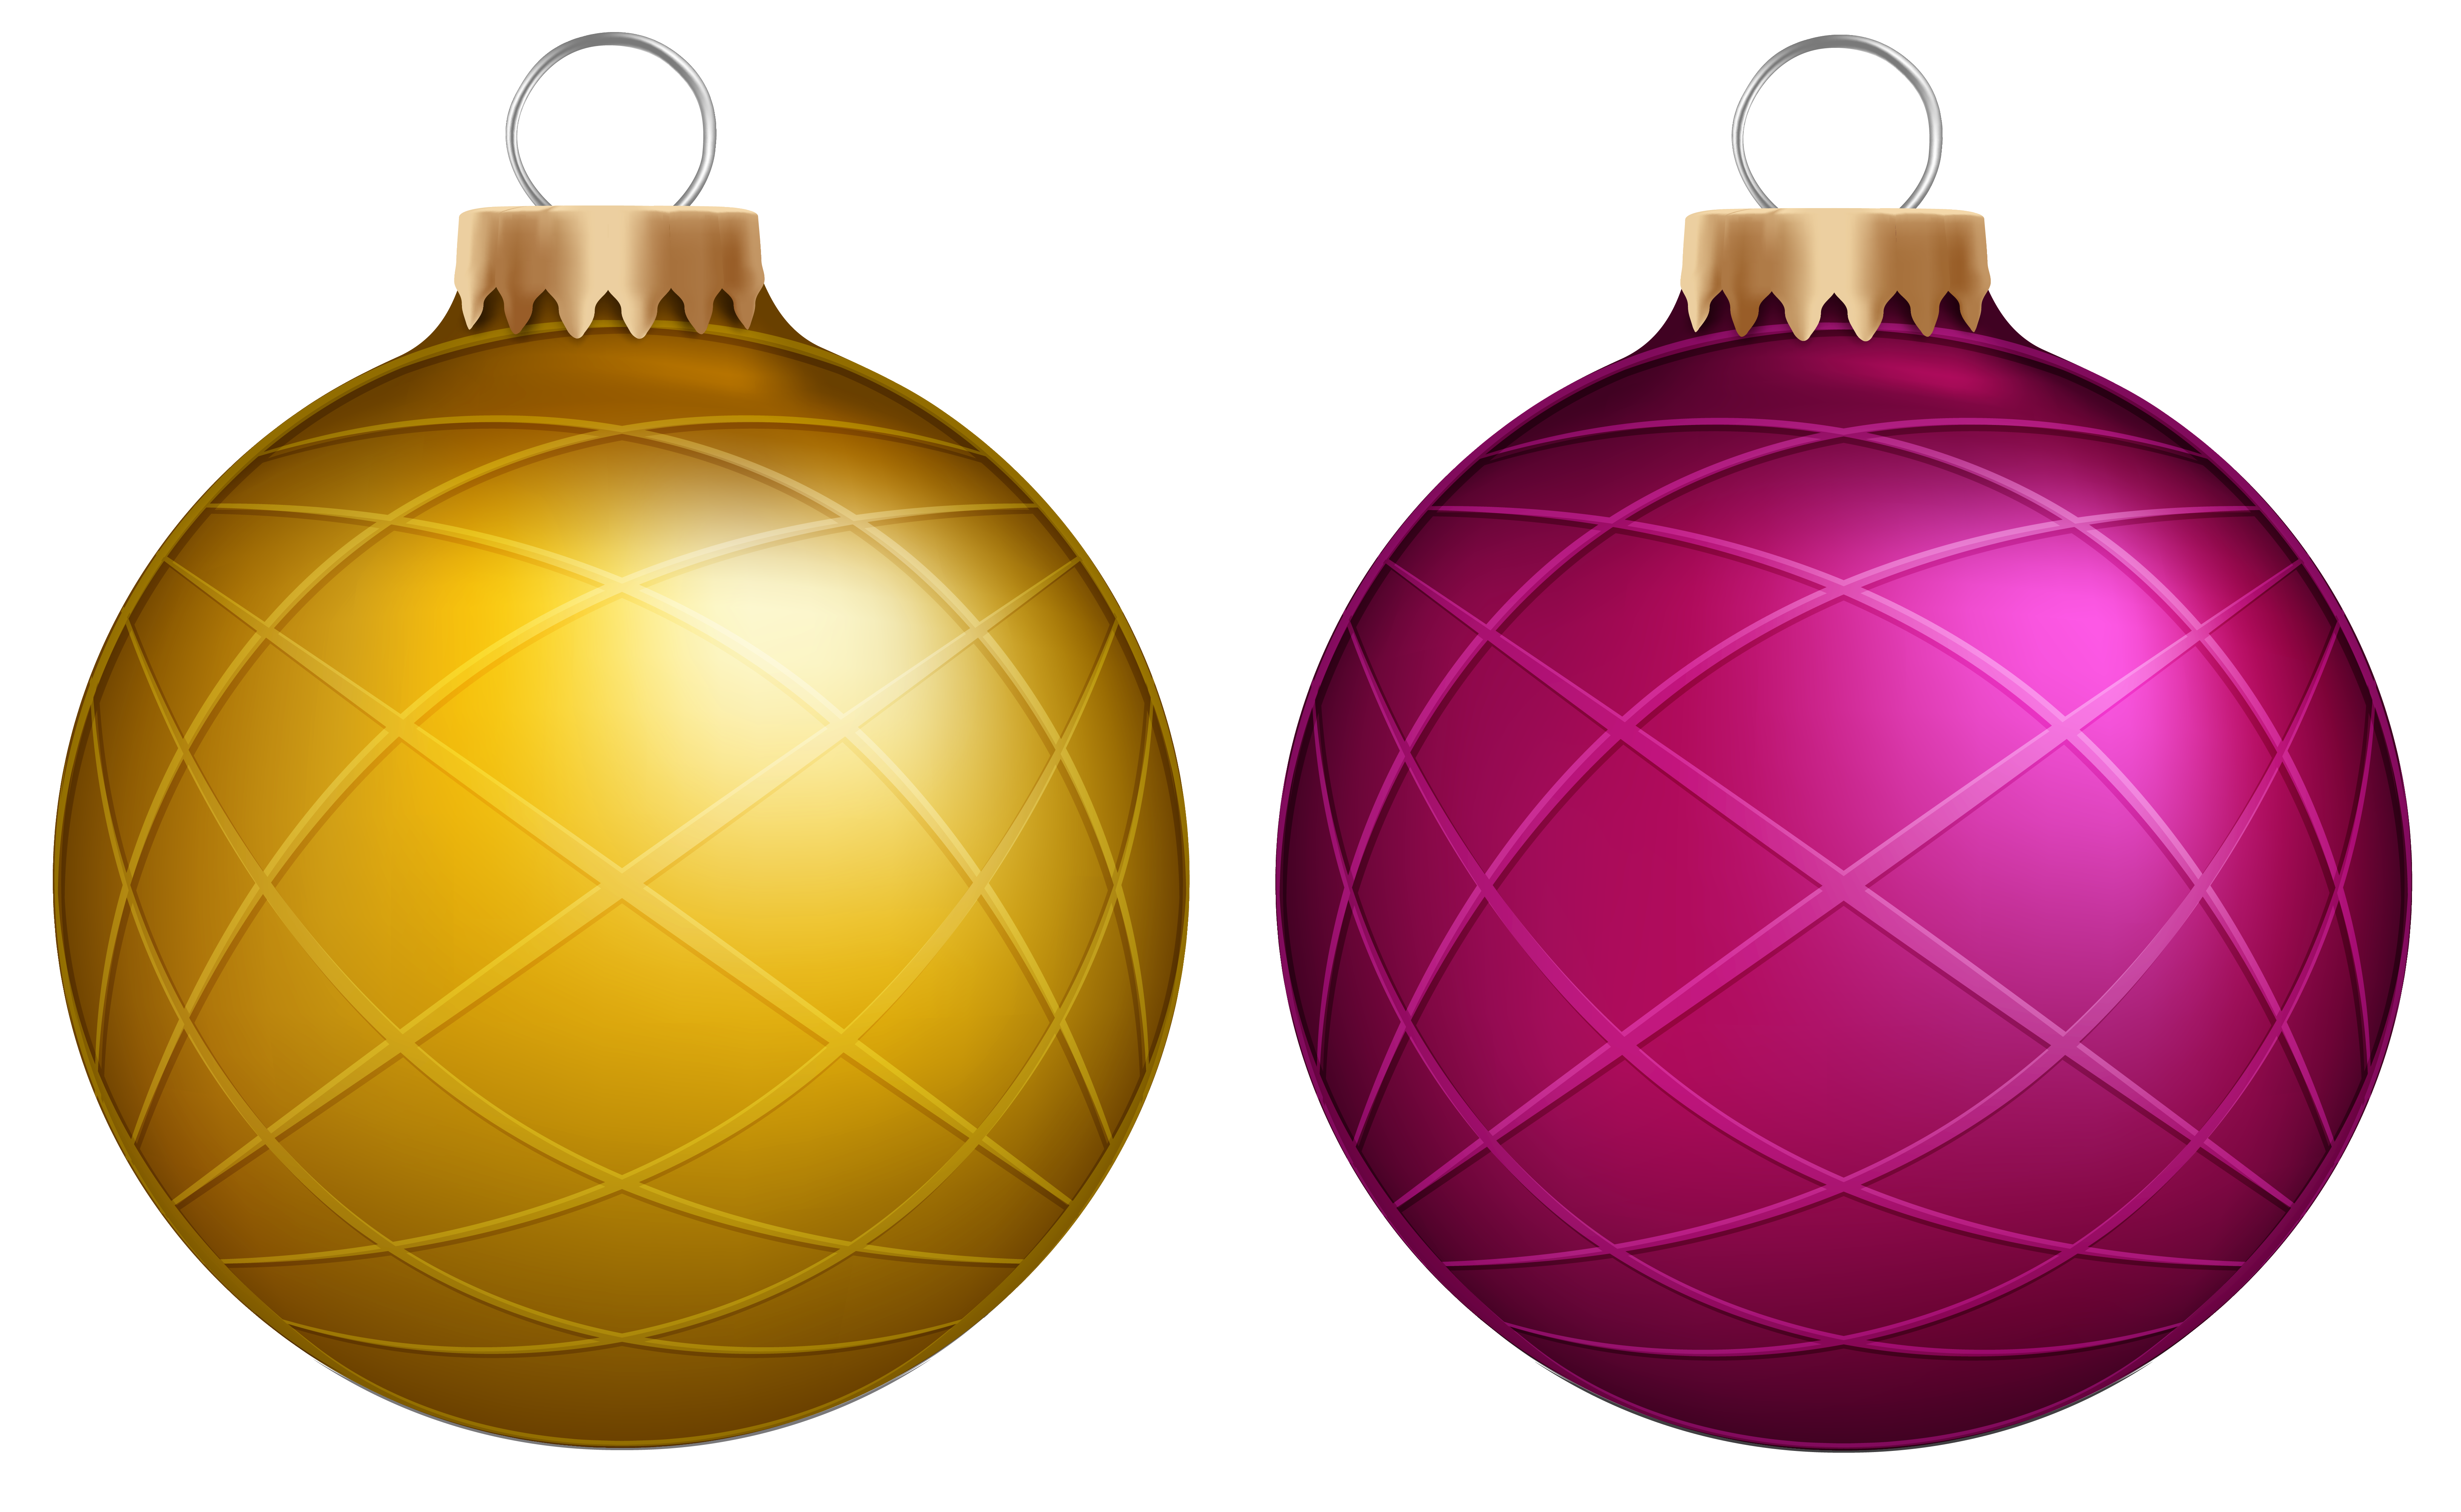 Instruments clipart pink. Yellow and christmas balls